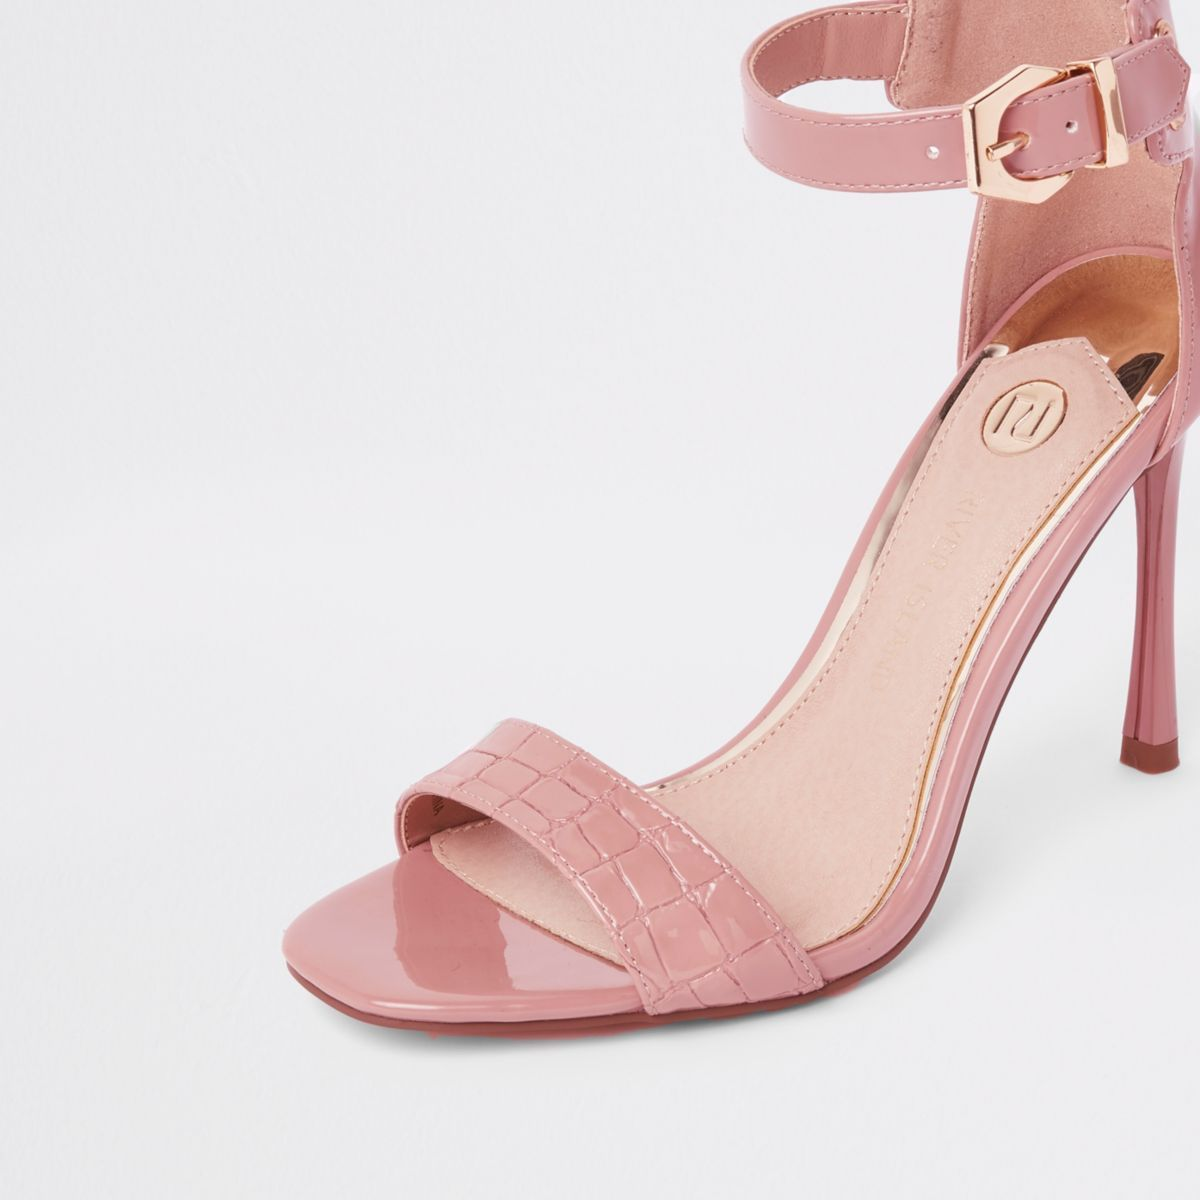 fdd0f91ba29 Light pink croc barely there sandals in 2019   PARTY OUTFITS   AW18 ...